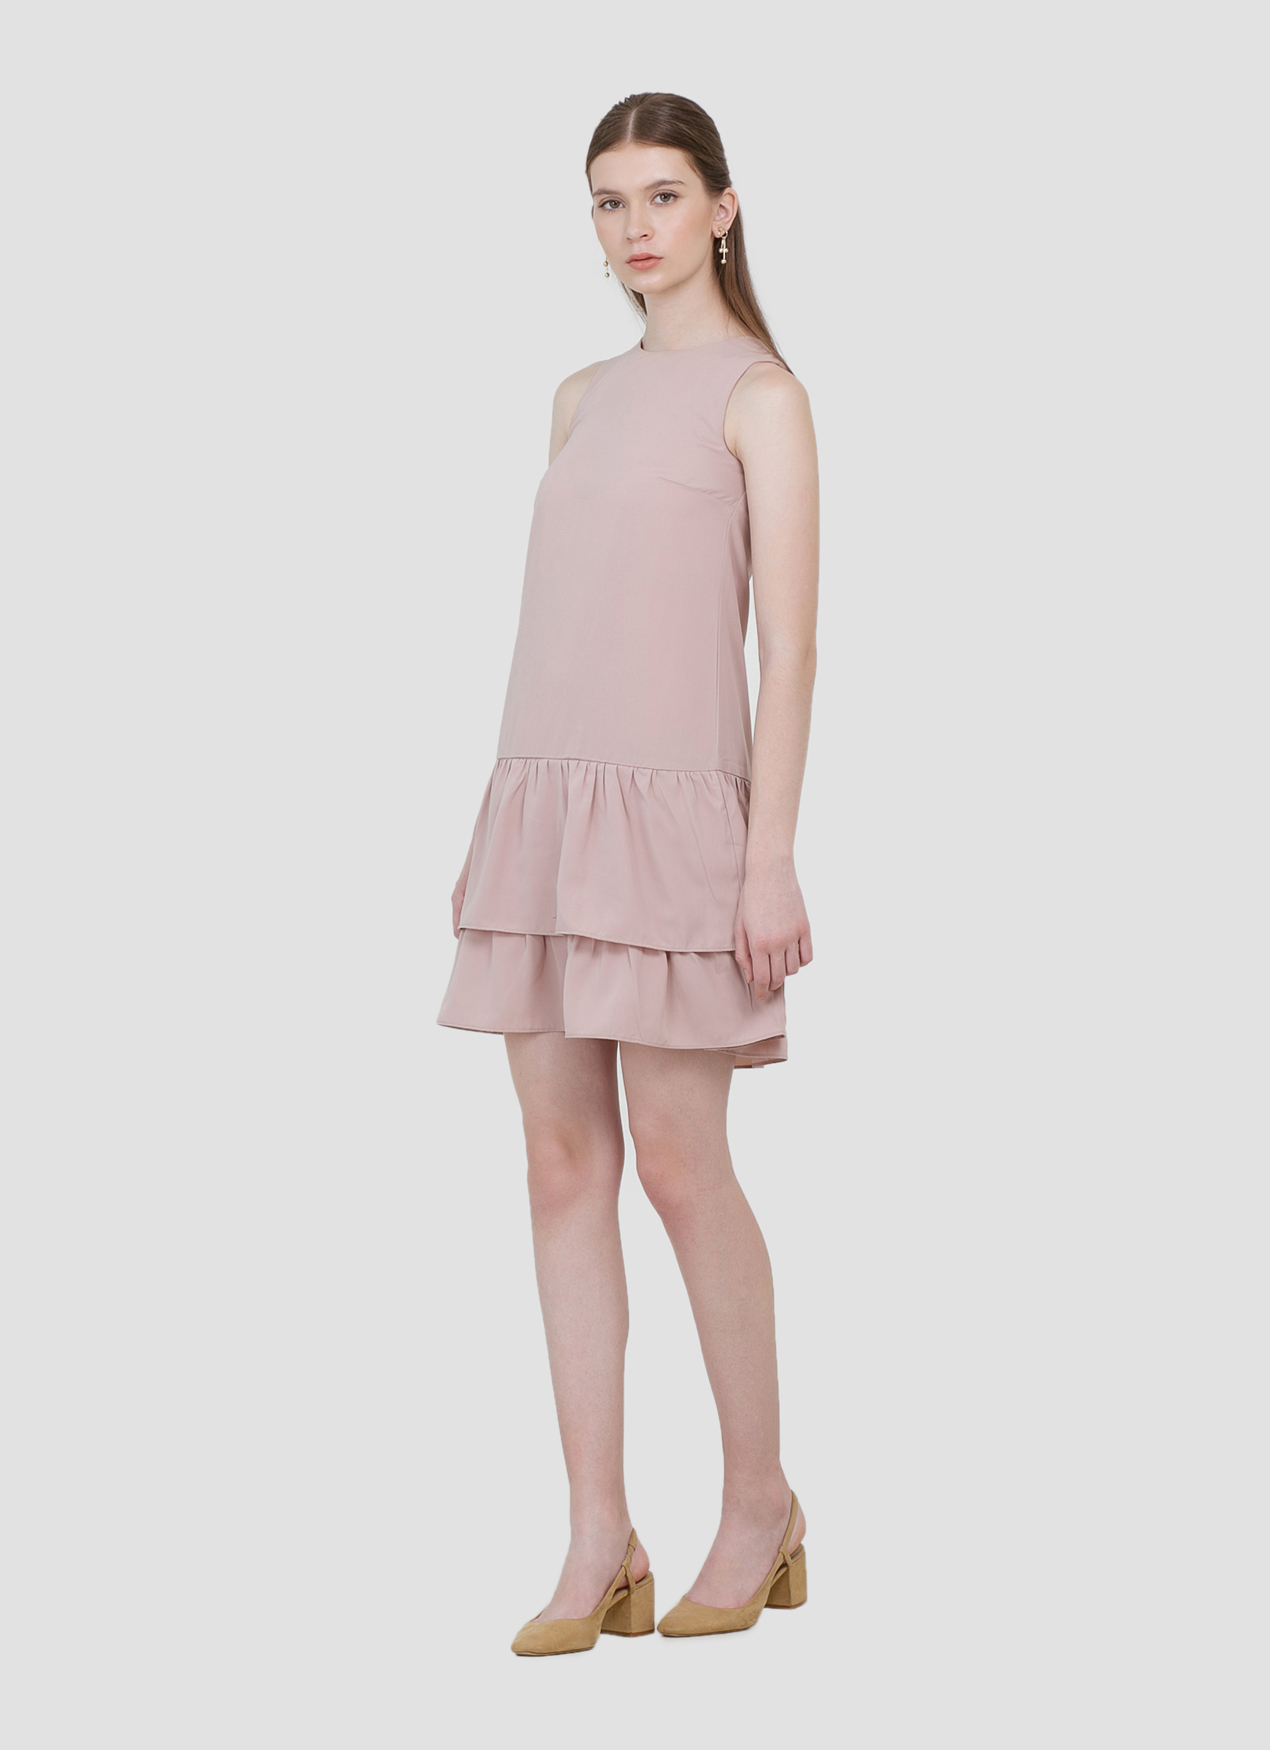 CLOTH INC Hannah Ruffle Dress - Mauve Pink